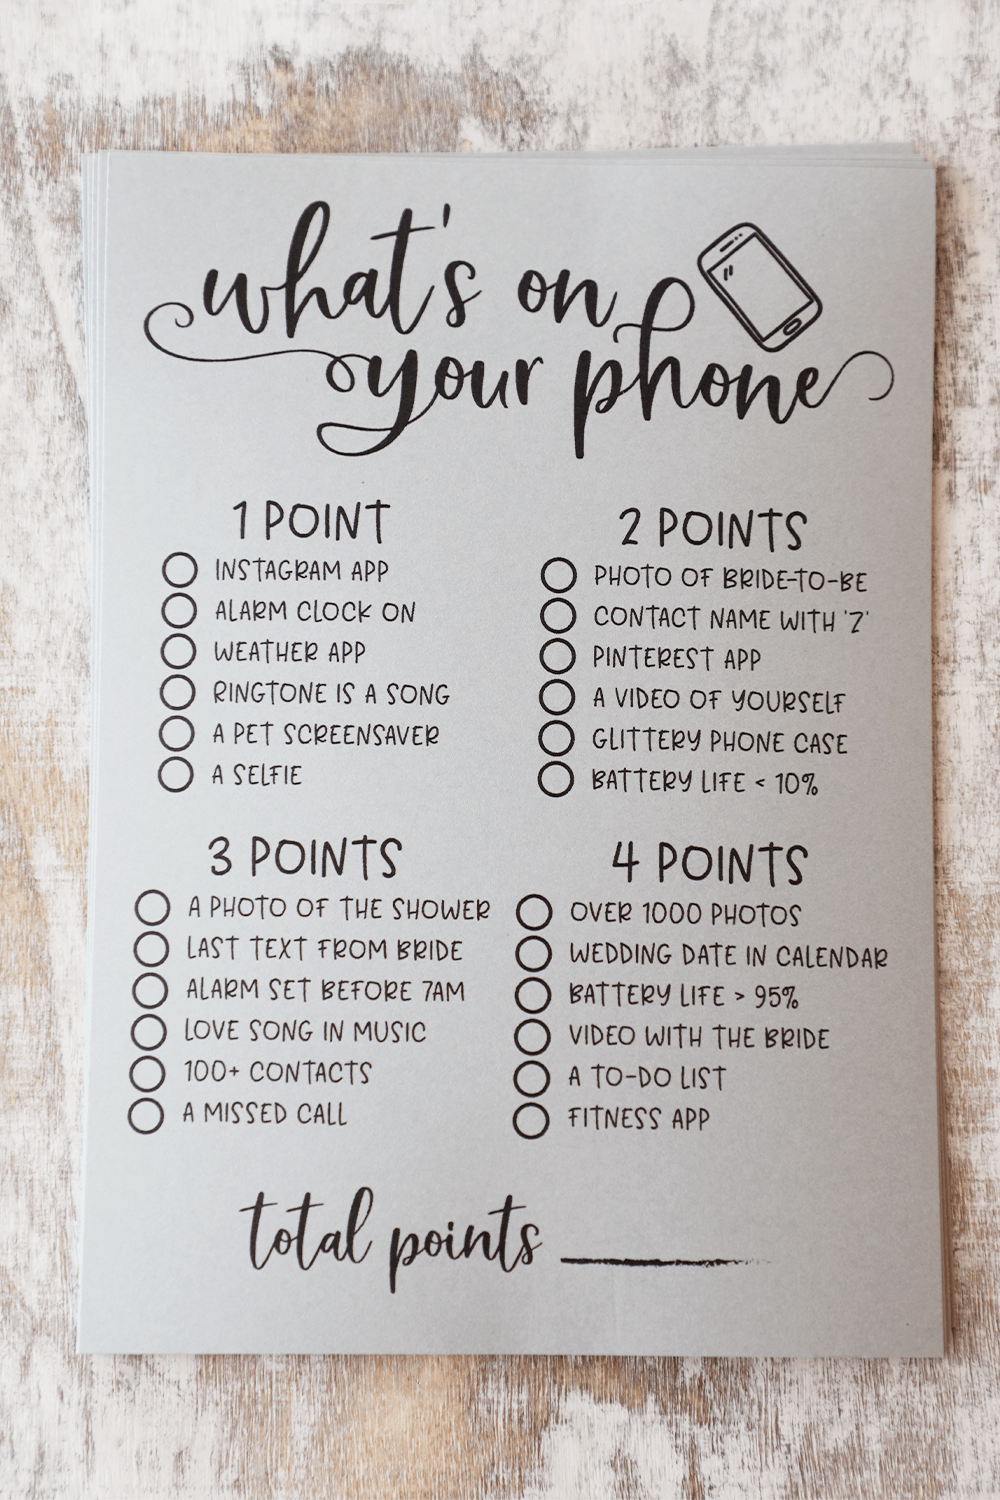 Grey What's On Your Phone Bridal Shower Game. Rustic Grey Bridal Shower Game. What's On Your Phone. Bridal Shower What's On Your Phone Game.